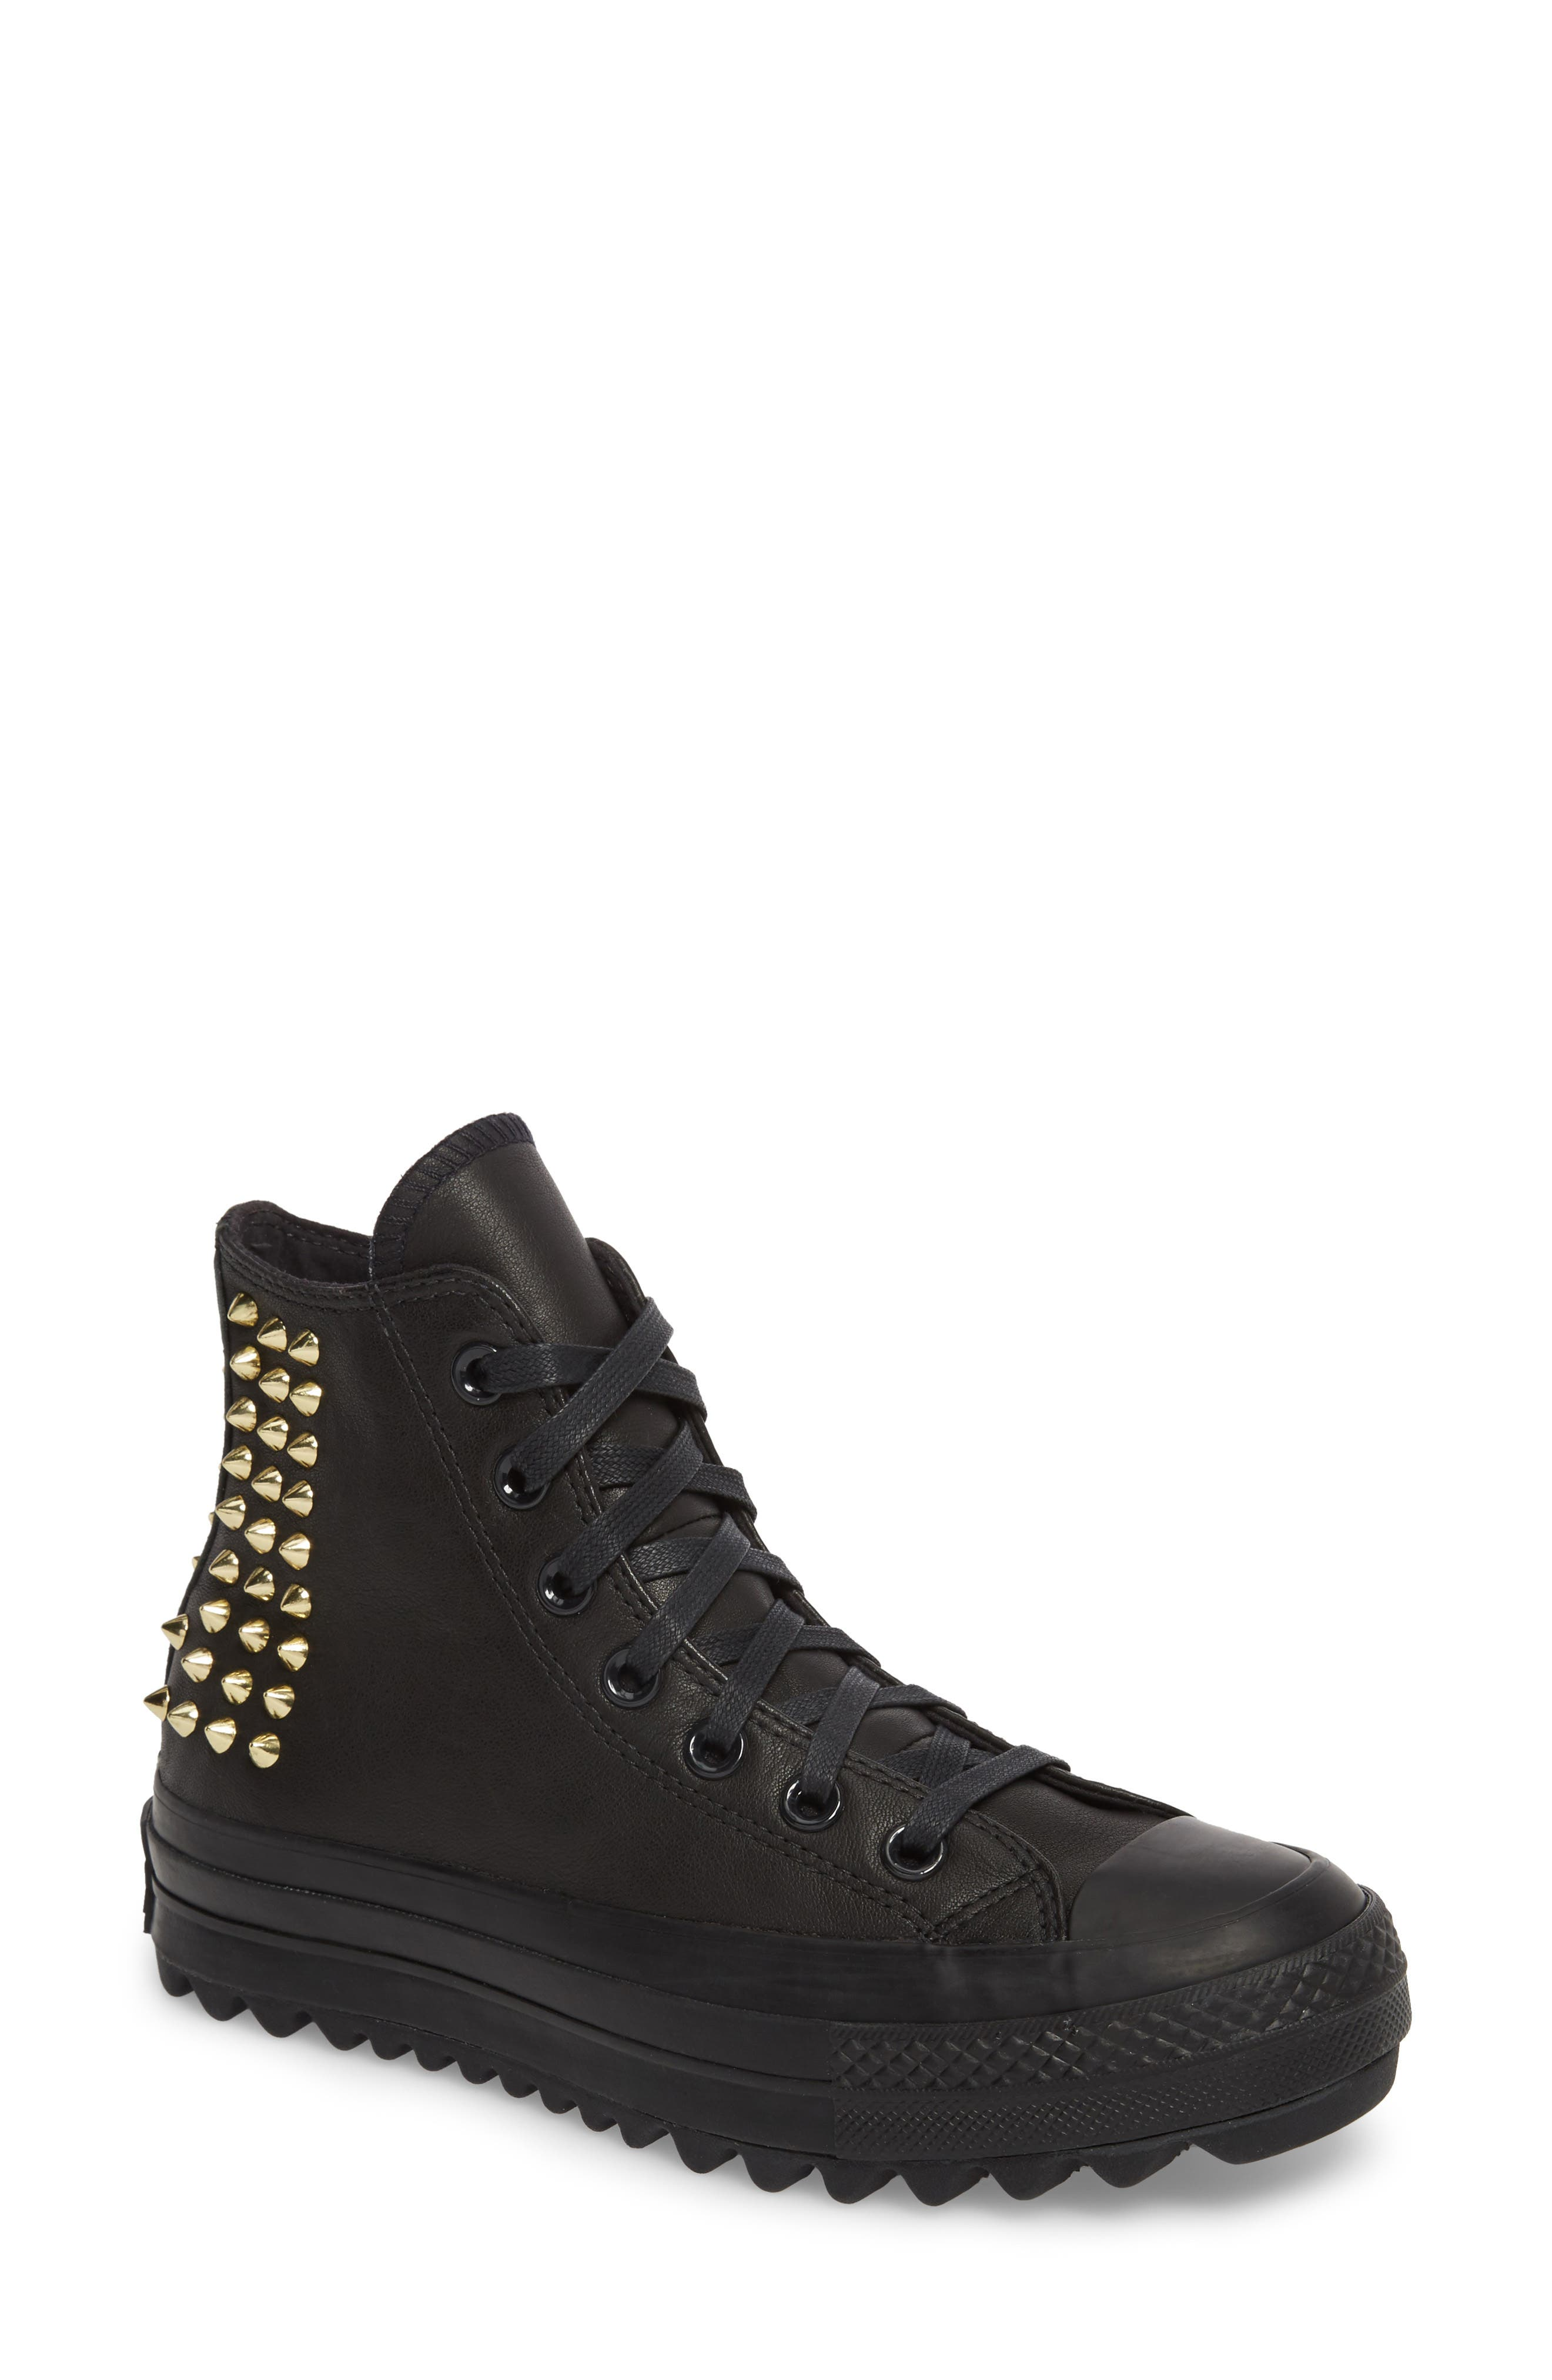 Chuck Taylor<sup>®</sup> All Star<sup>®</sup> Lift Ripple Studded High Top Sneaker,                             Main thumbnail 1, color,                             001